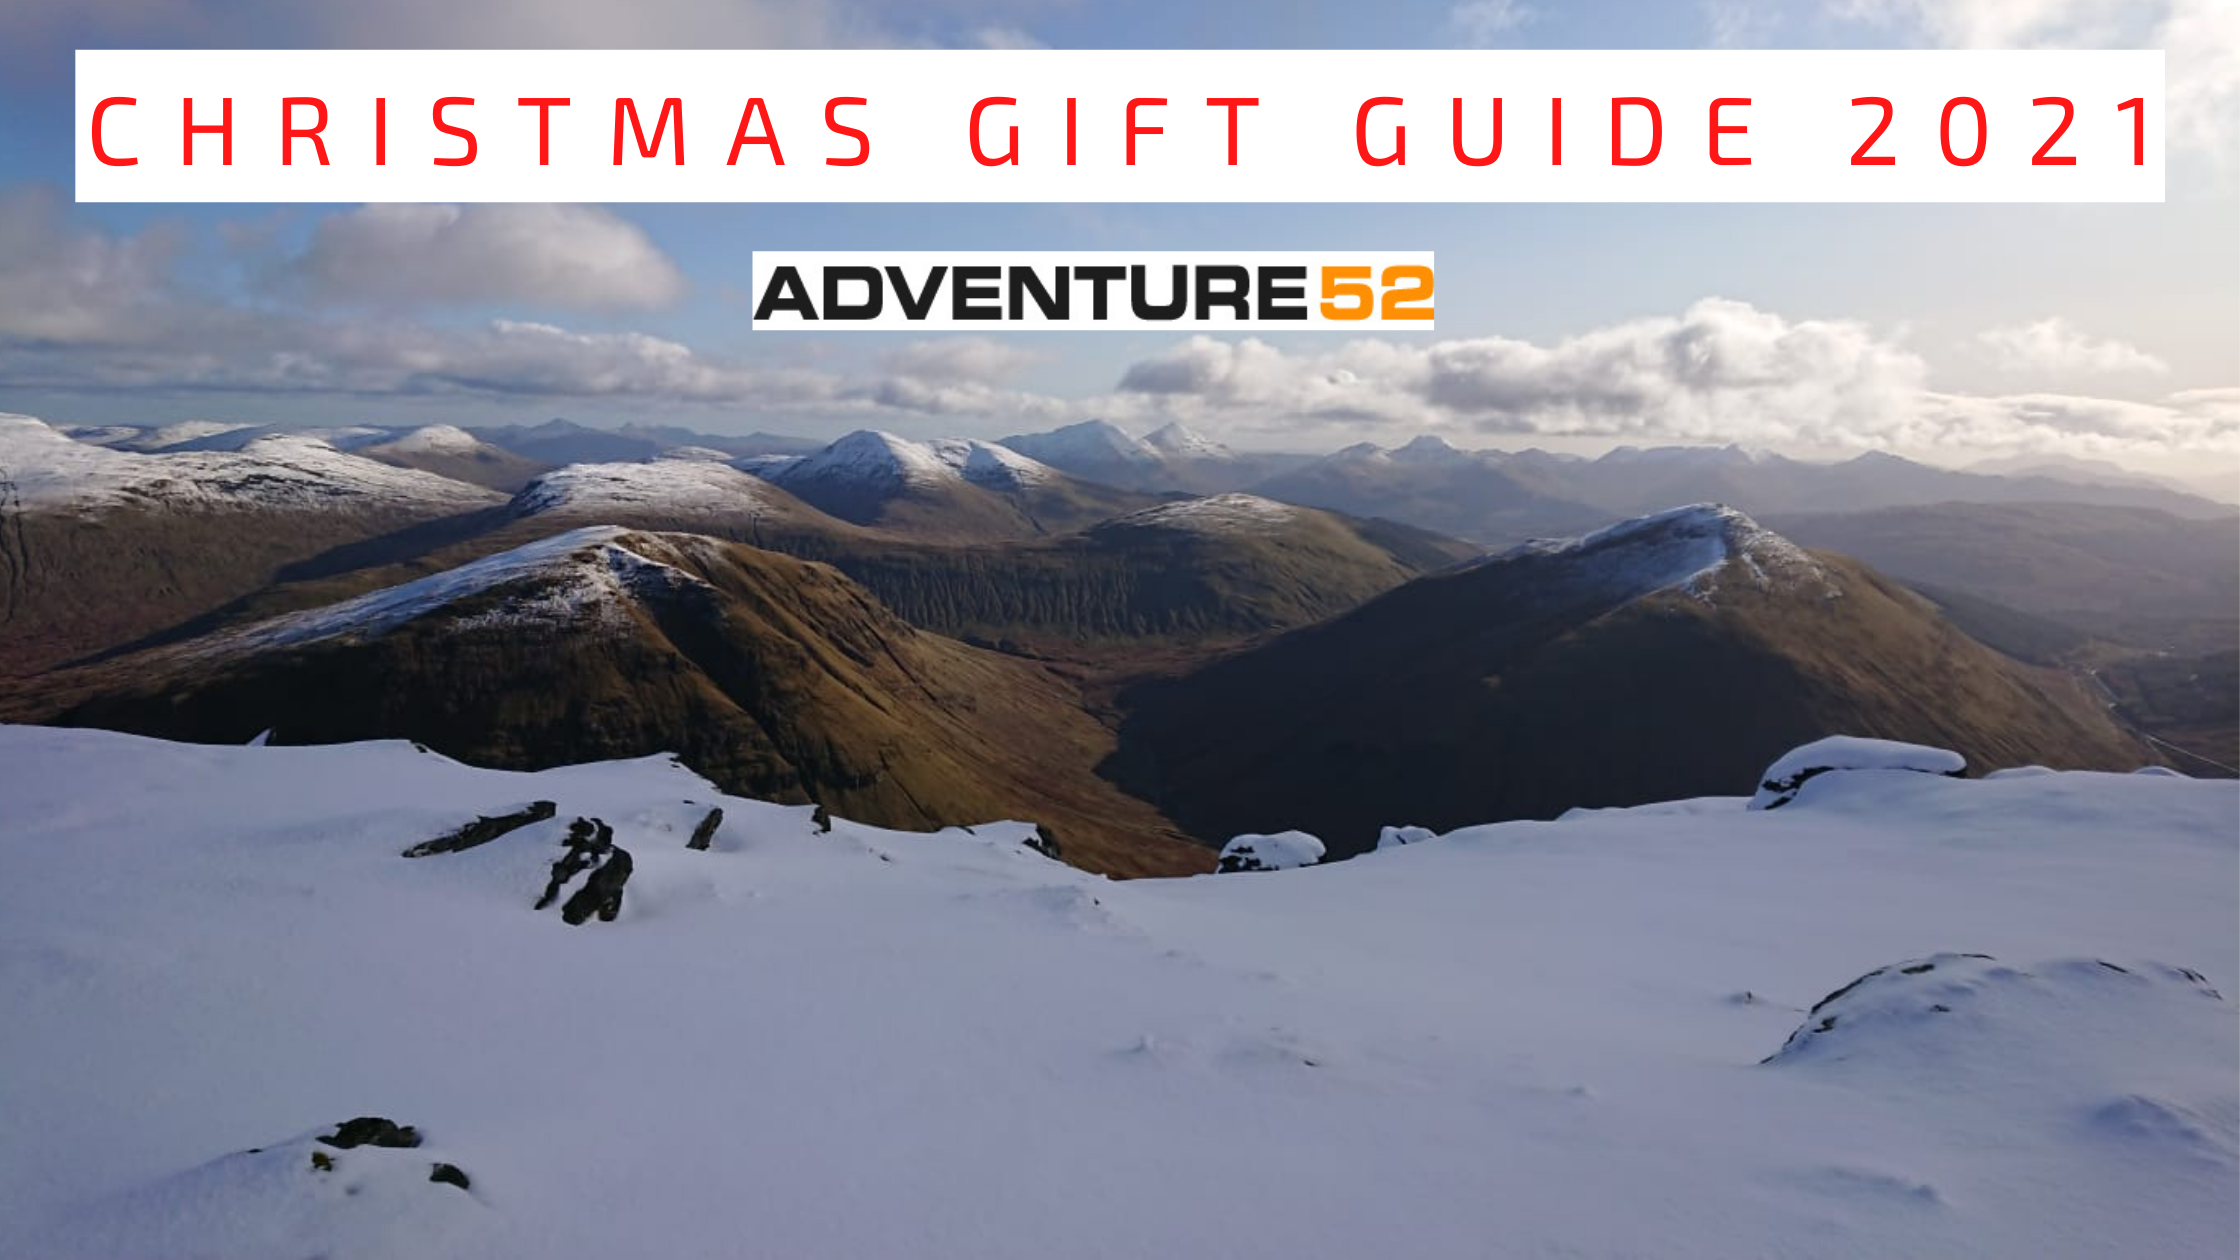 Adventure 52's Christmas Gift Guide 2021